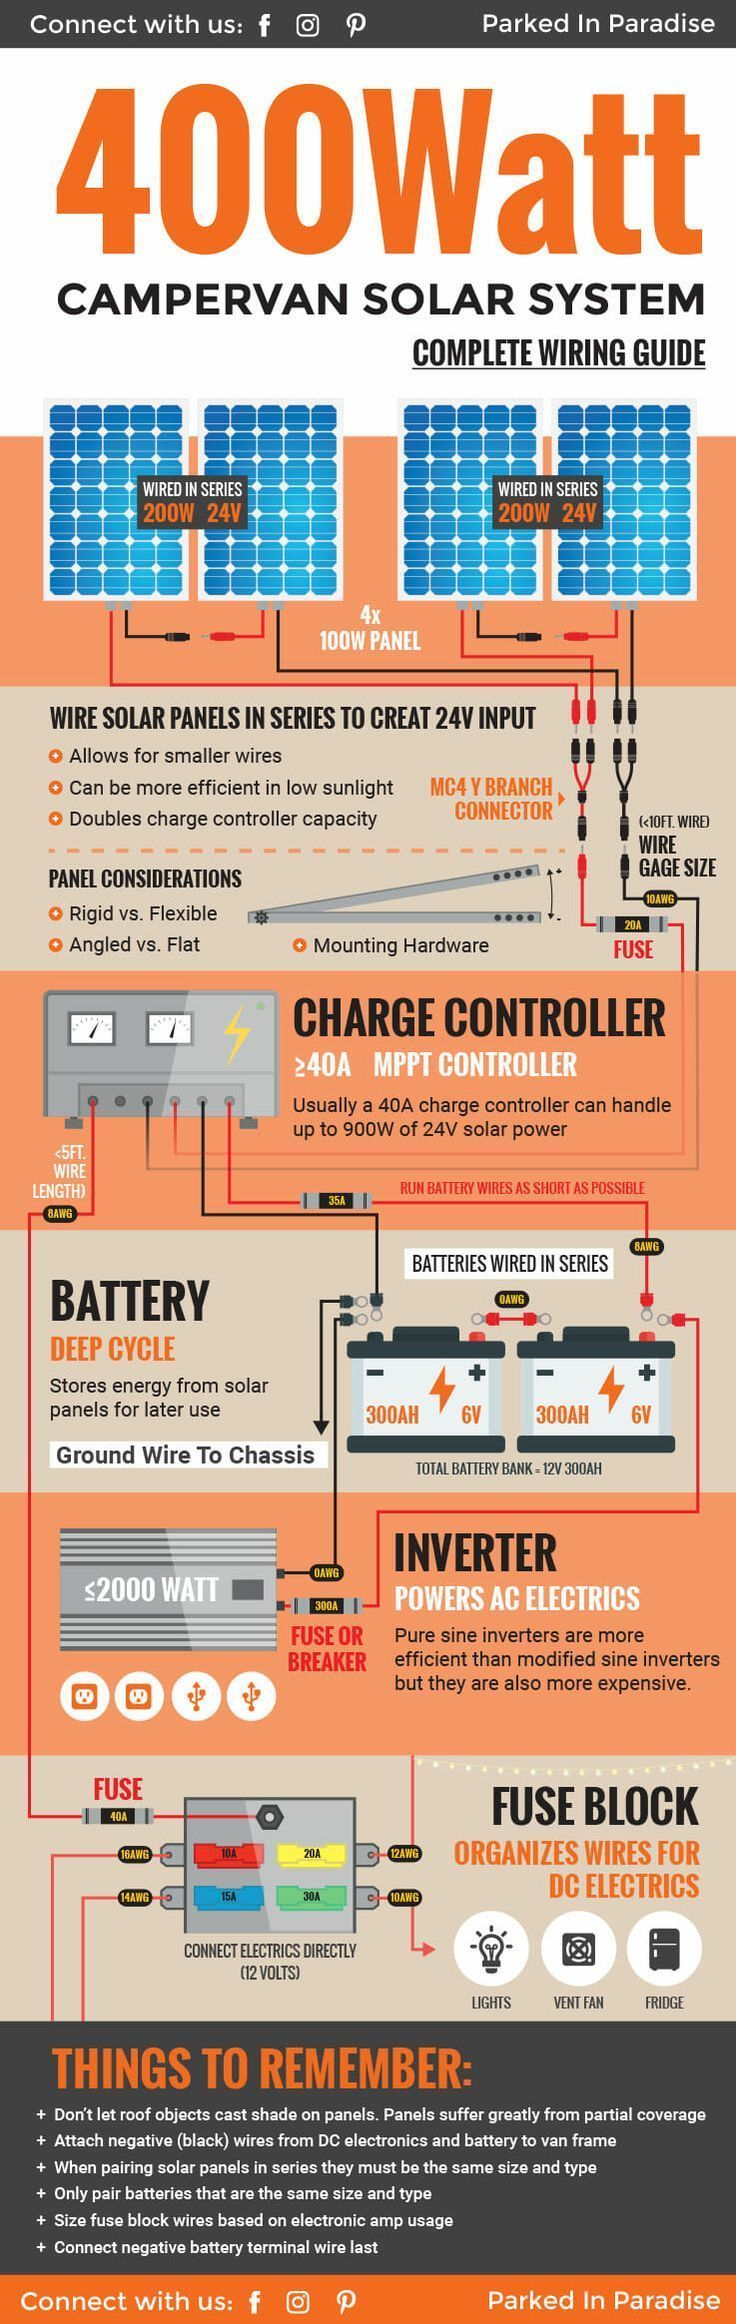 hight resolution of diy wiring guide for a 400 watt solar panel system perfect kit for a campervan build i want this on my own van build perfect solar power setup of